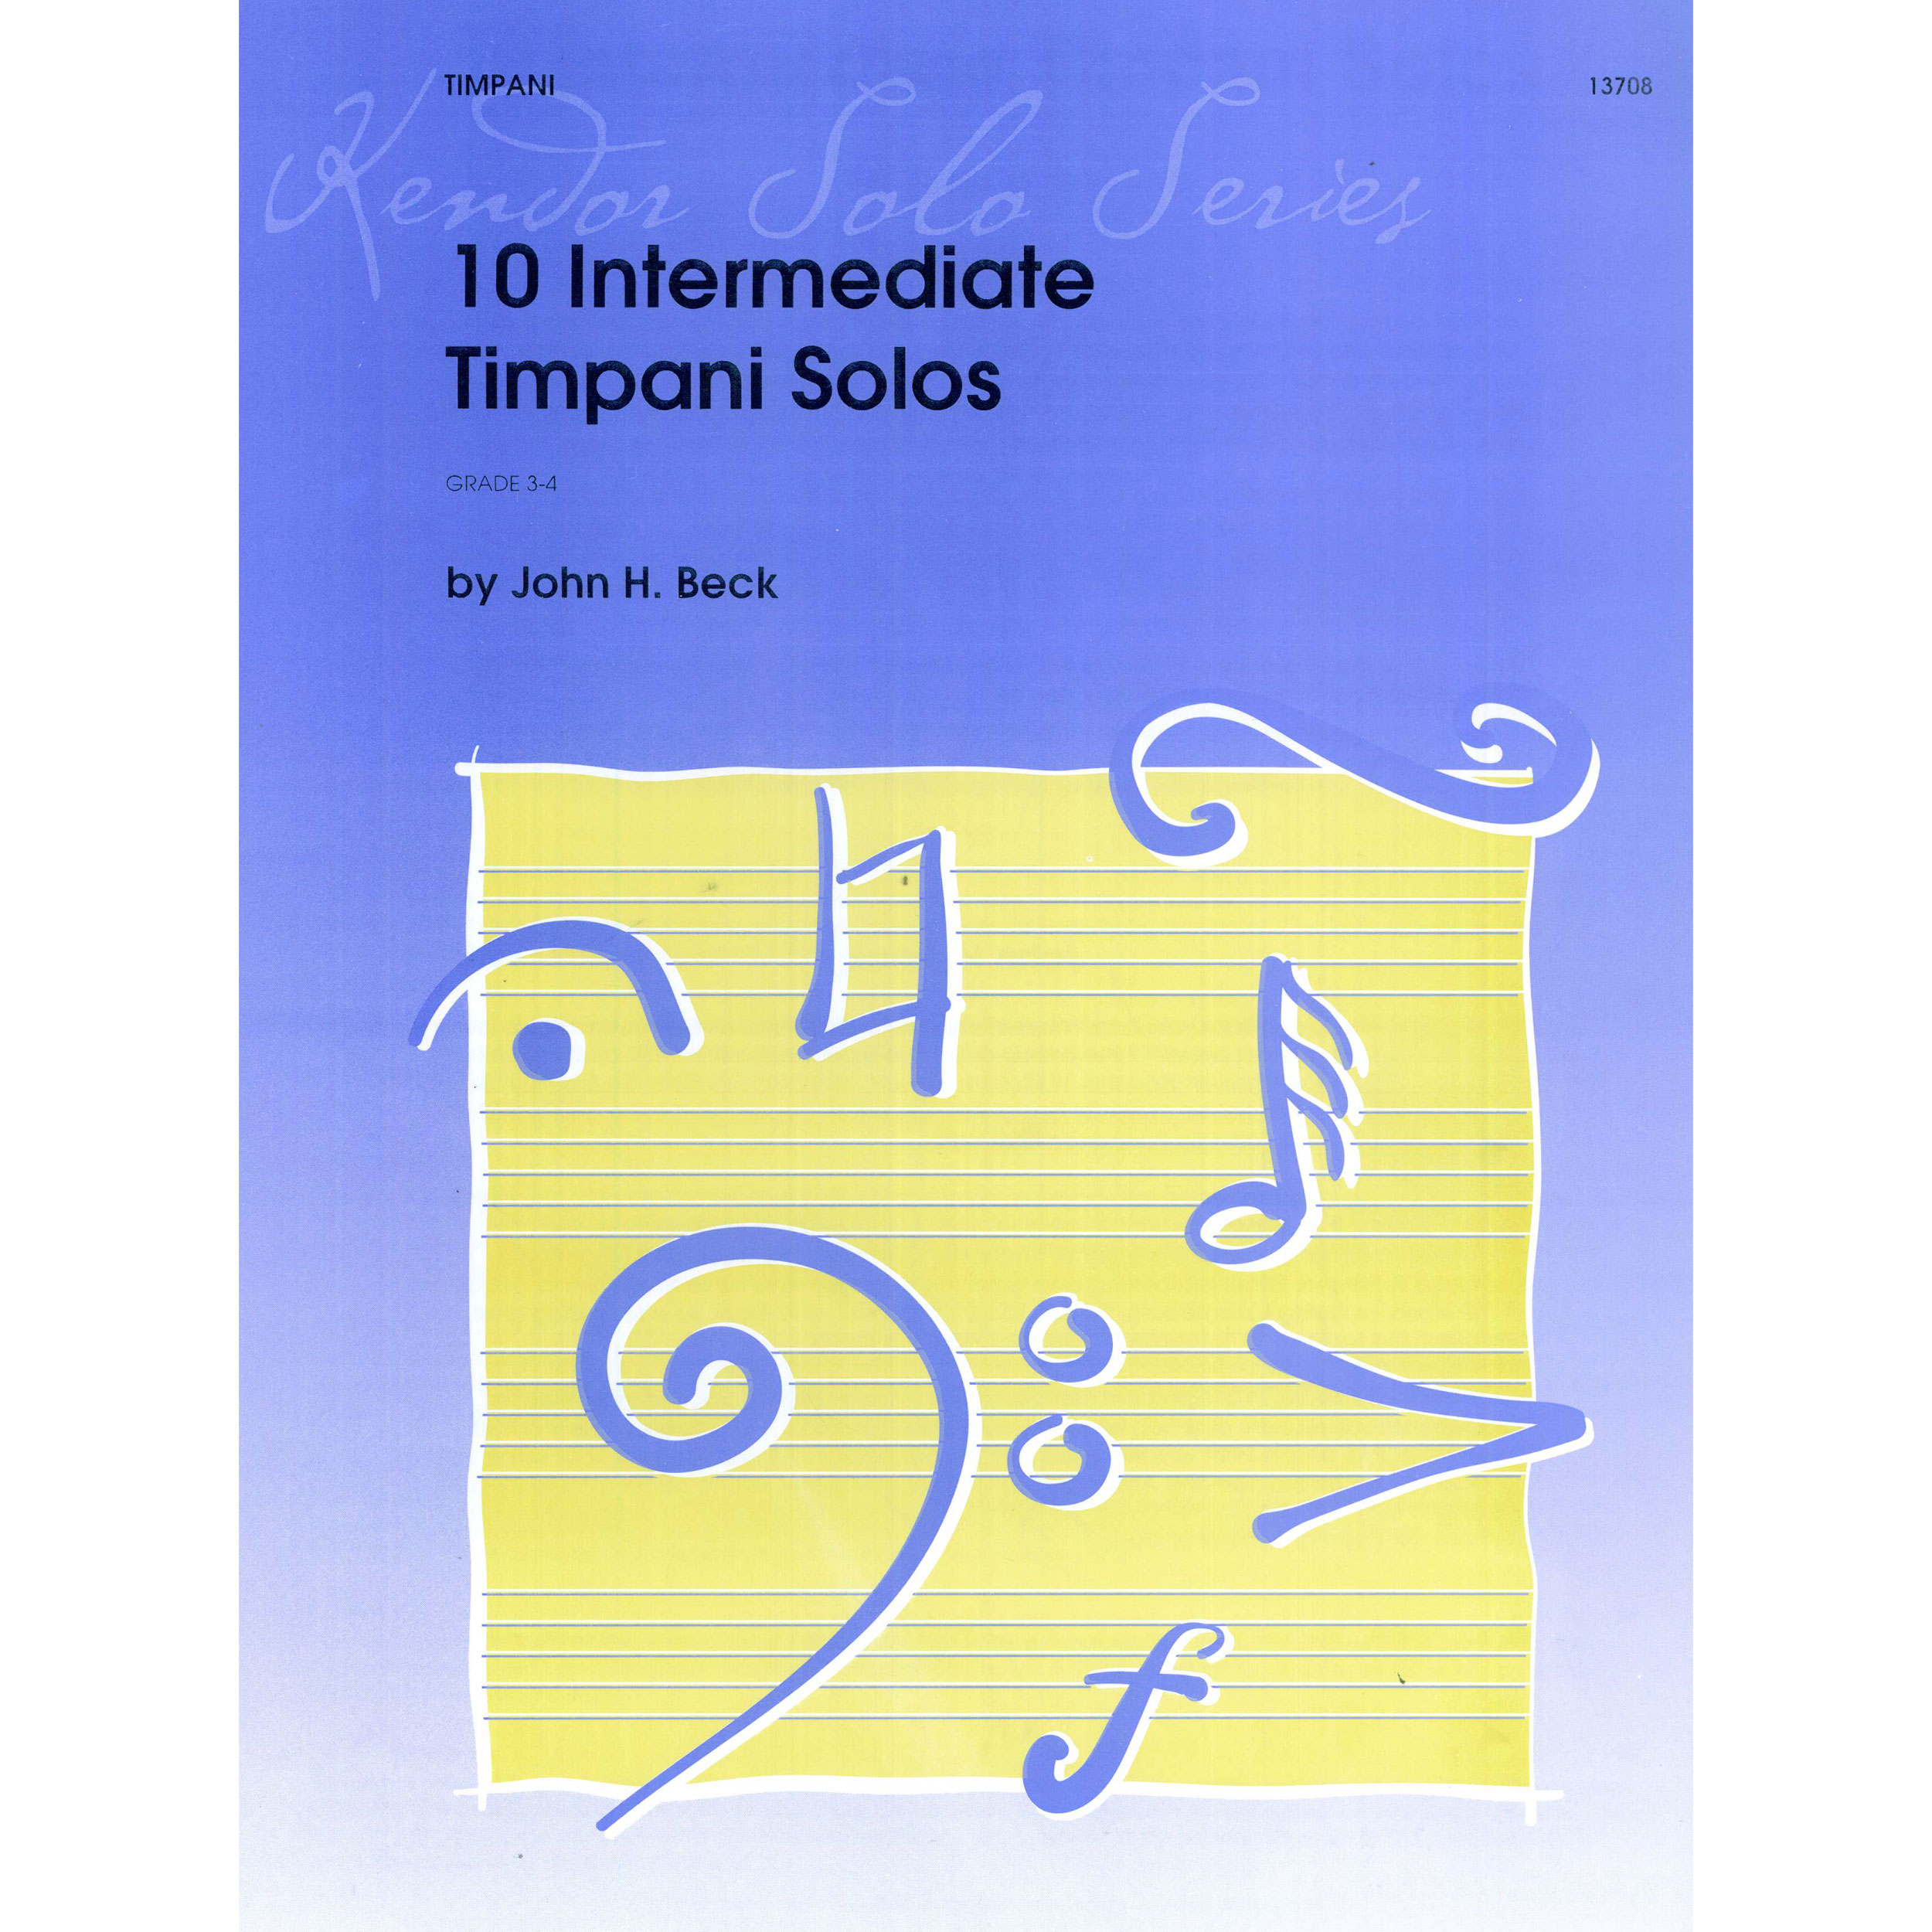 10 Intermediate Timpani Solos by John Beck